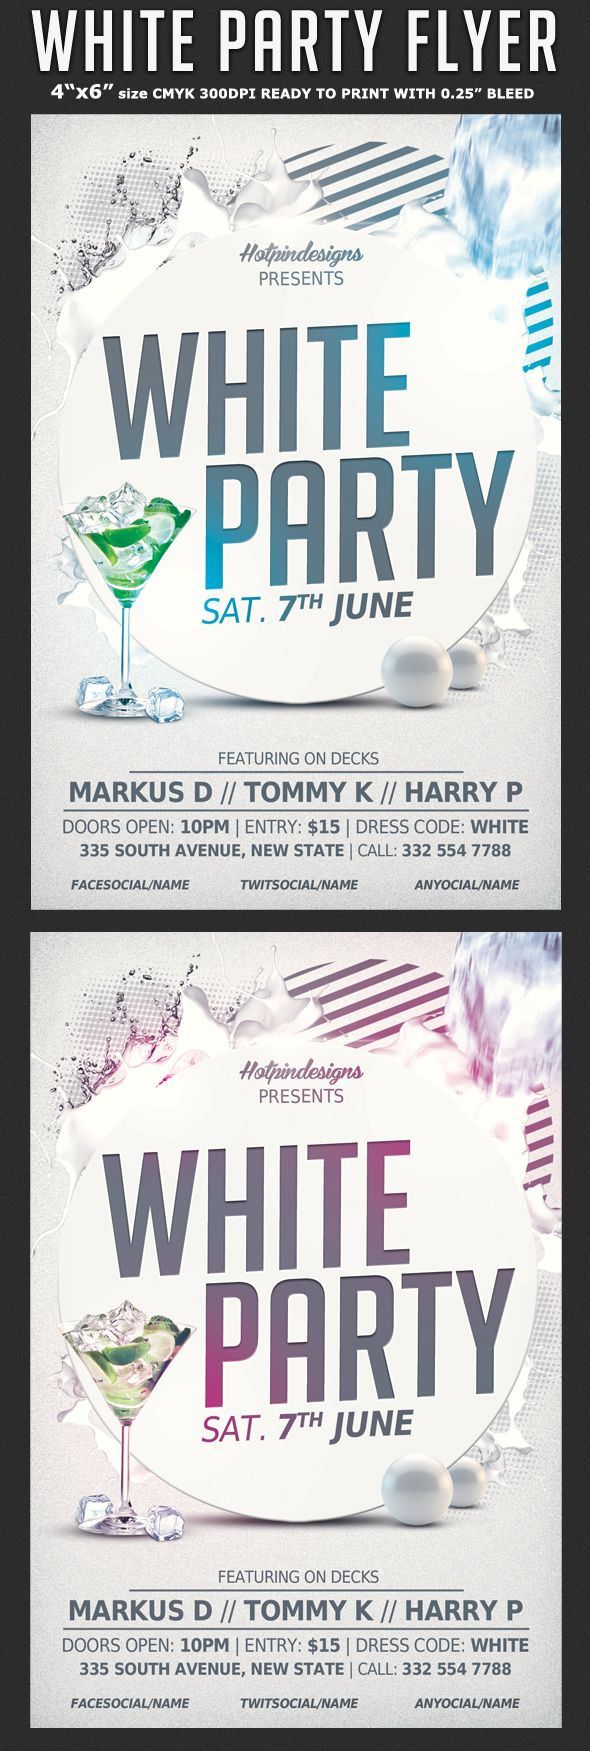 White Affair Party Flyer Template By Christos Andronicou Via